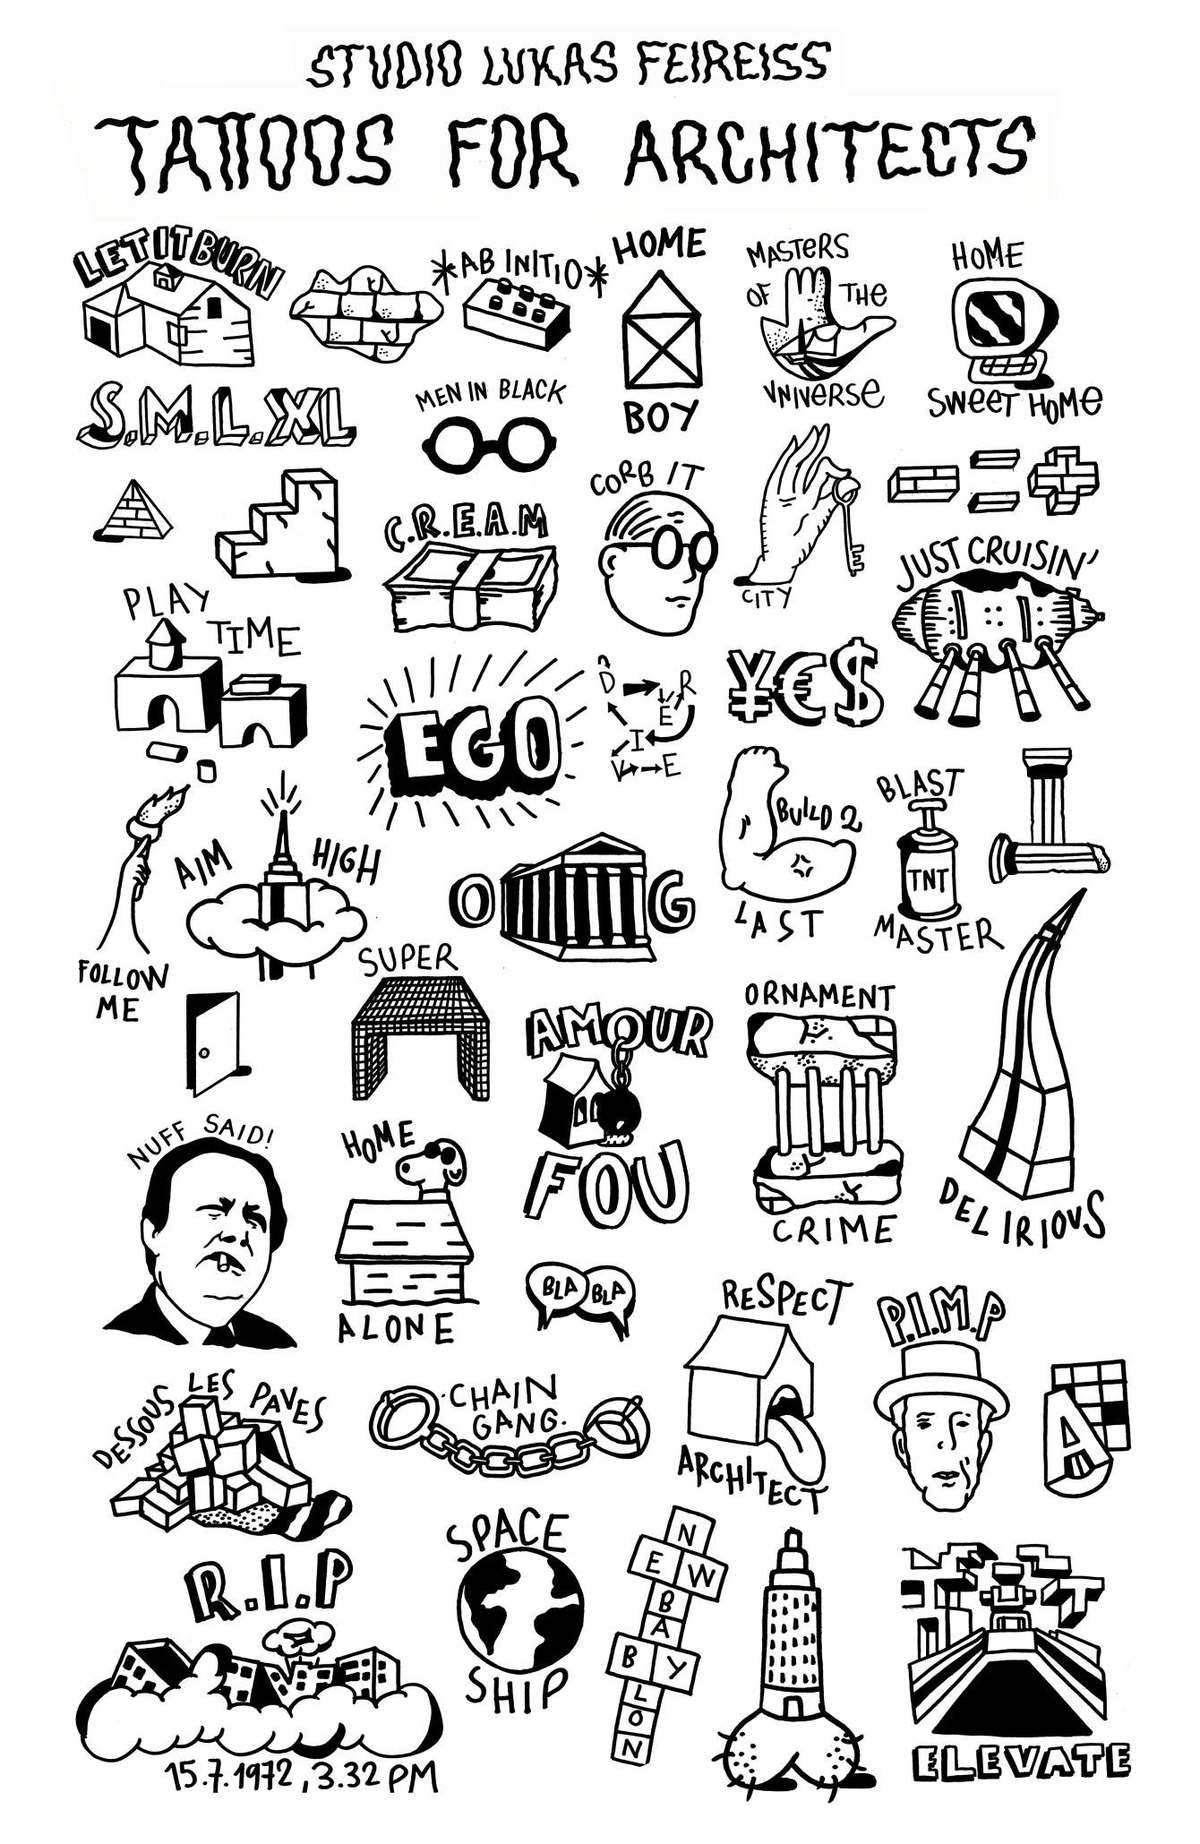 Tattoos for Architects. Image courtesy Lukas Feireiss.